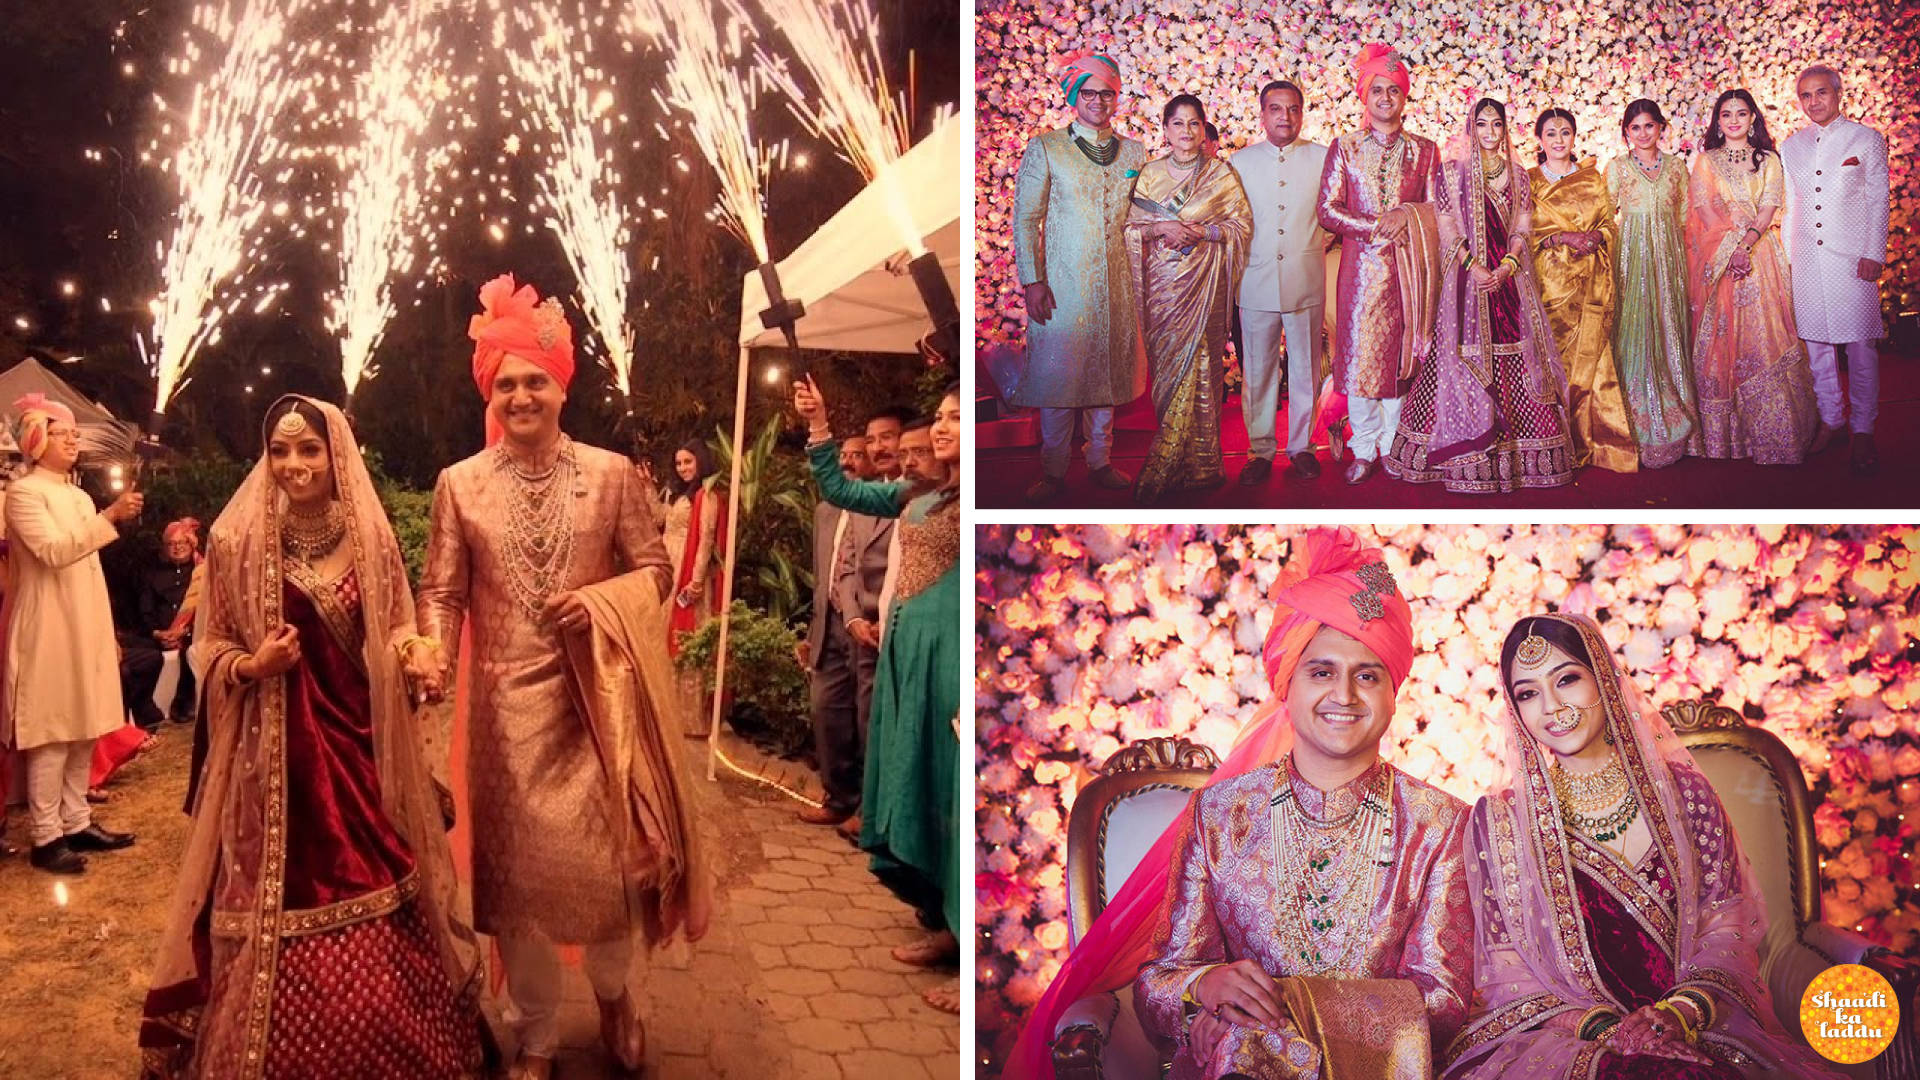 A Majestic Wedding: Krutika Kartikeya Ghorpade and Akshay Bhansali